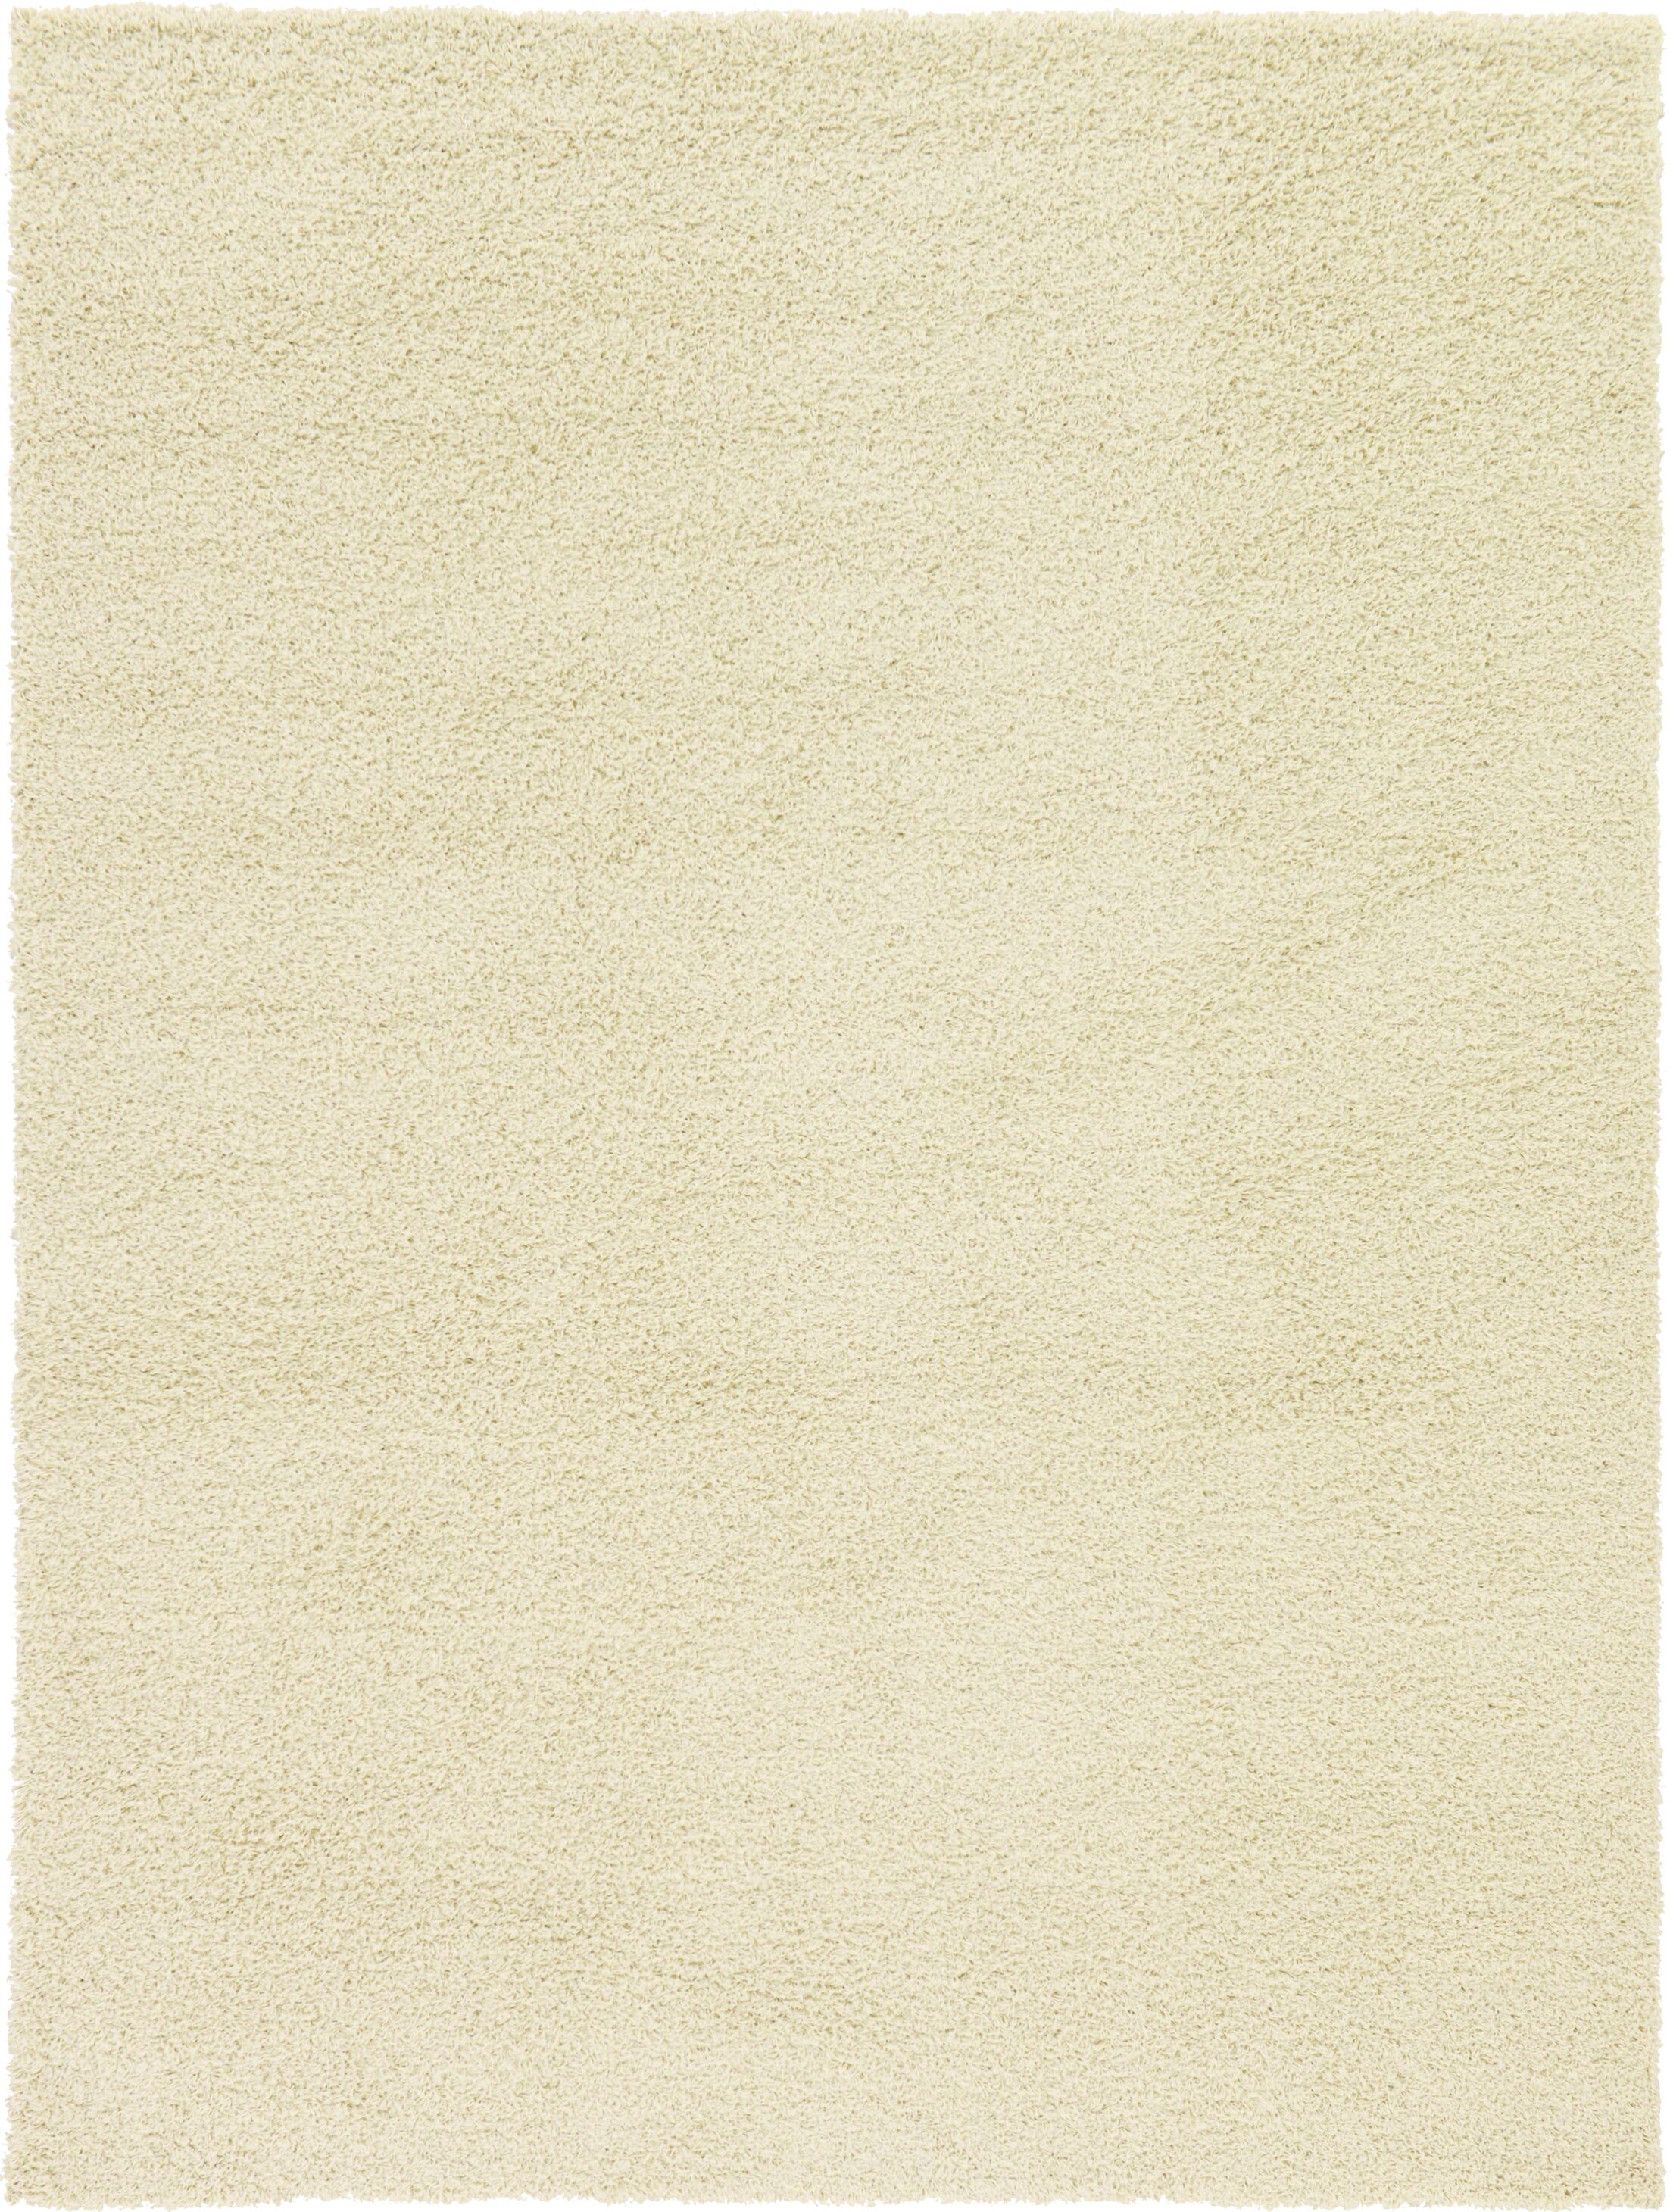 Lilah Pure Ivory Area Rug Rug Size: Rectangle 8' x 11'